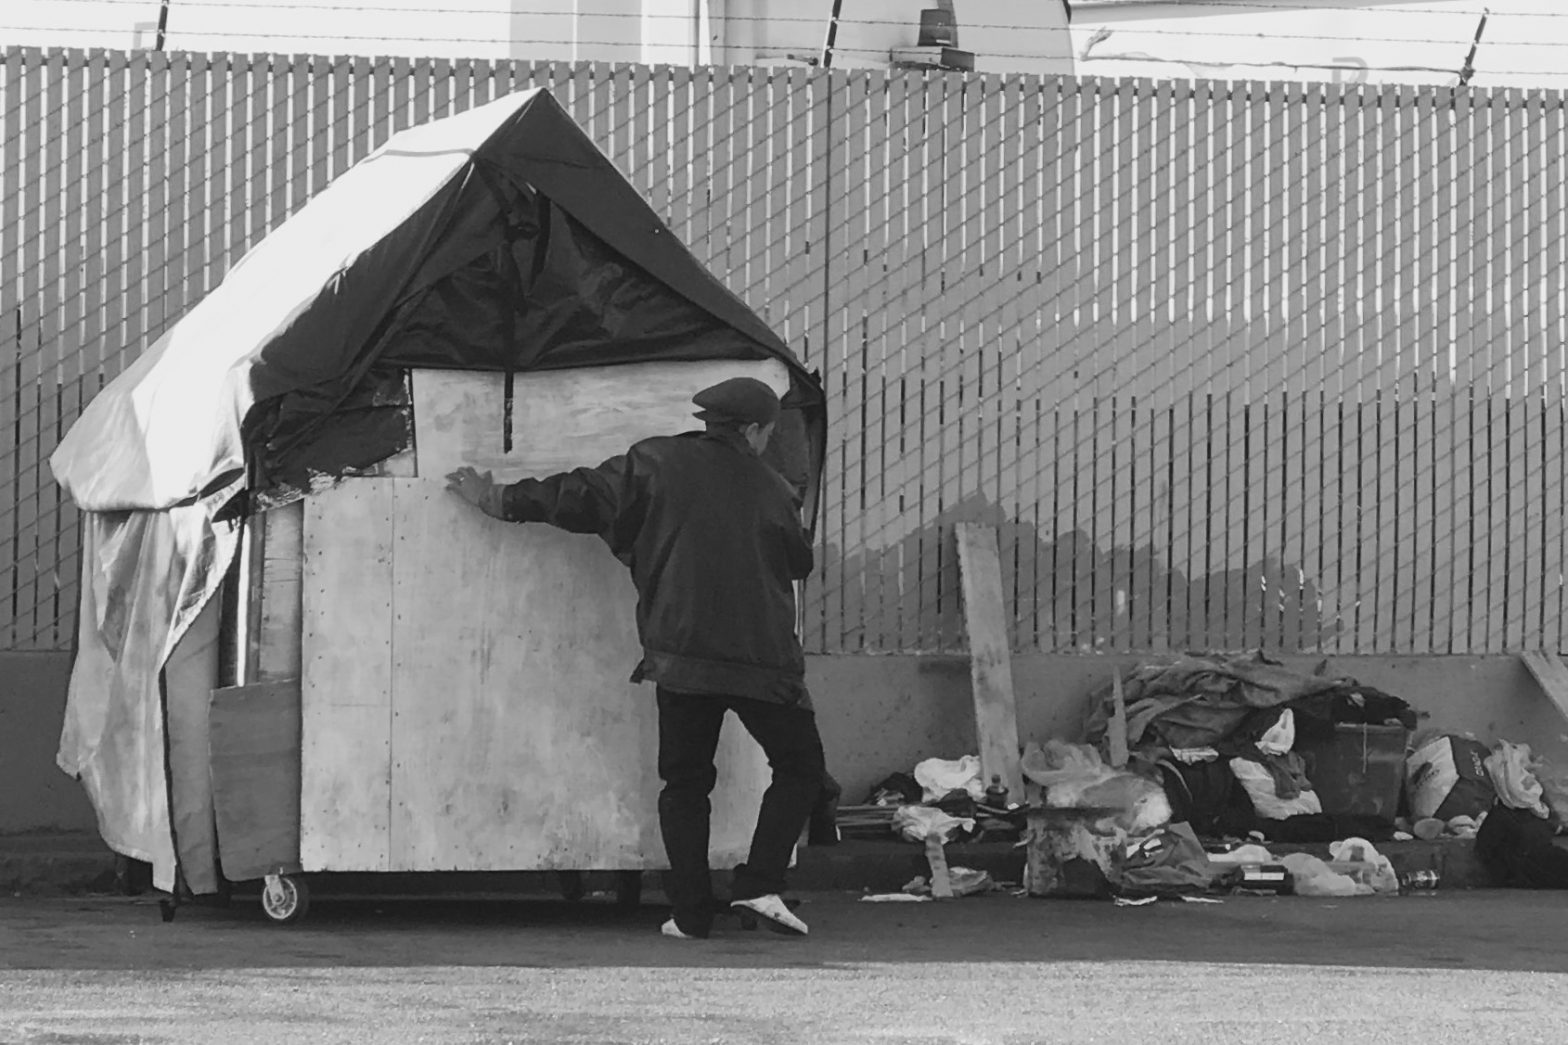 homeless_sf_2017-05_cropped.jpg